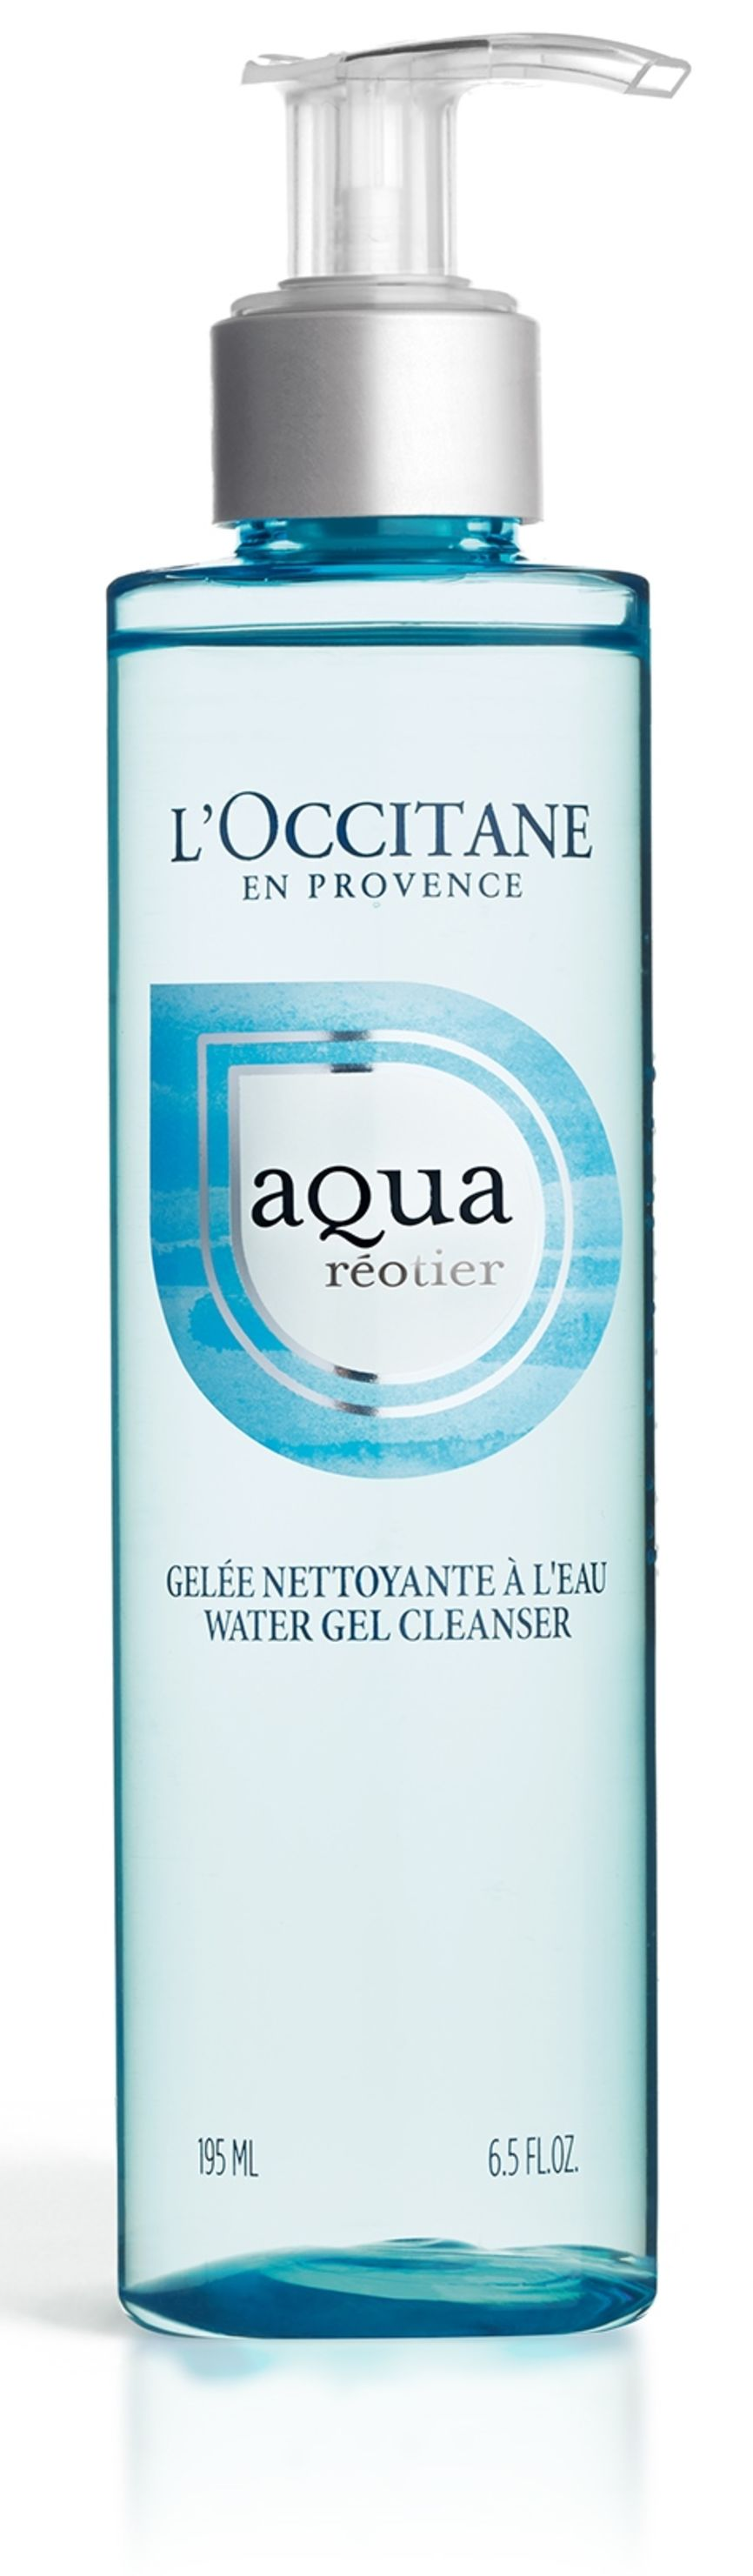 L'Occitane Aqua Réotier Water Gel Cleanser 195ml